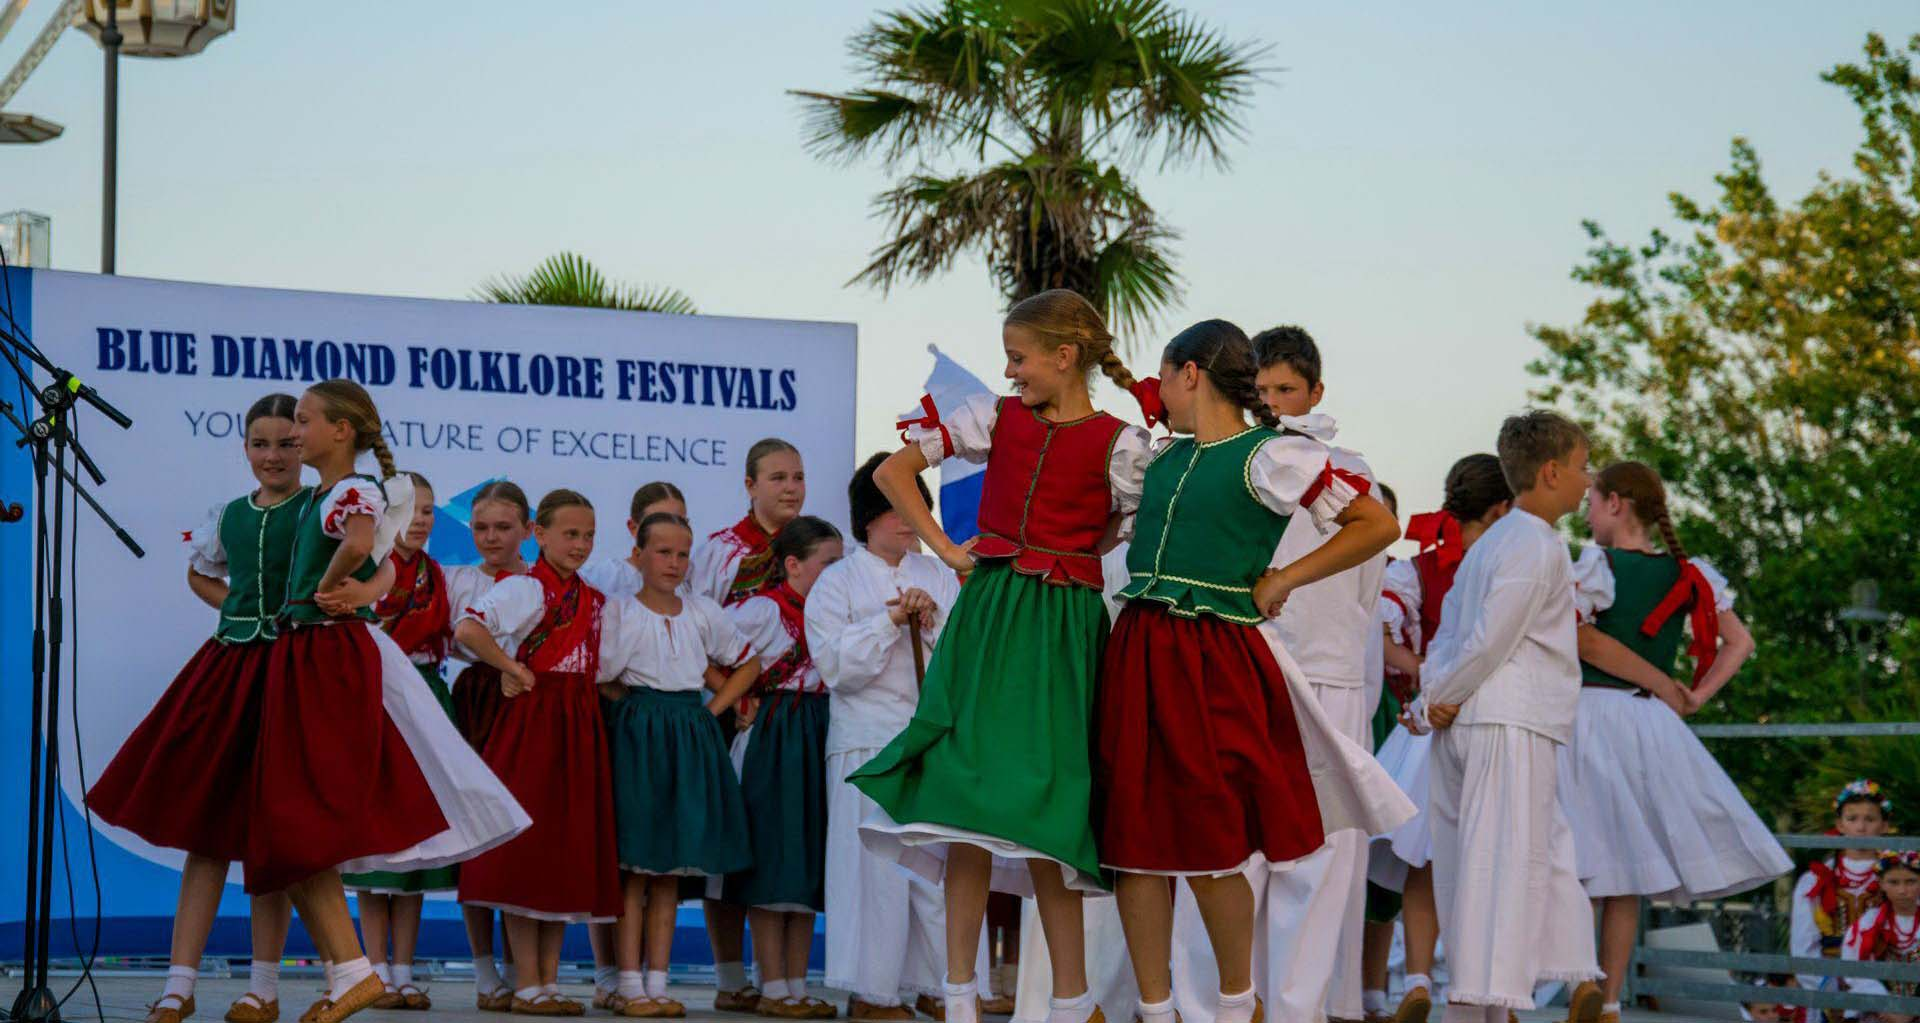 Folklore festival in Bled